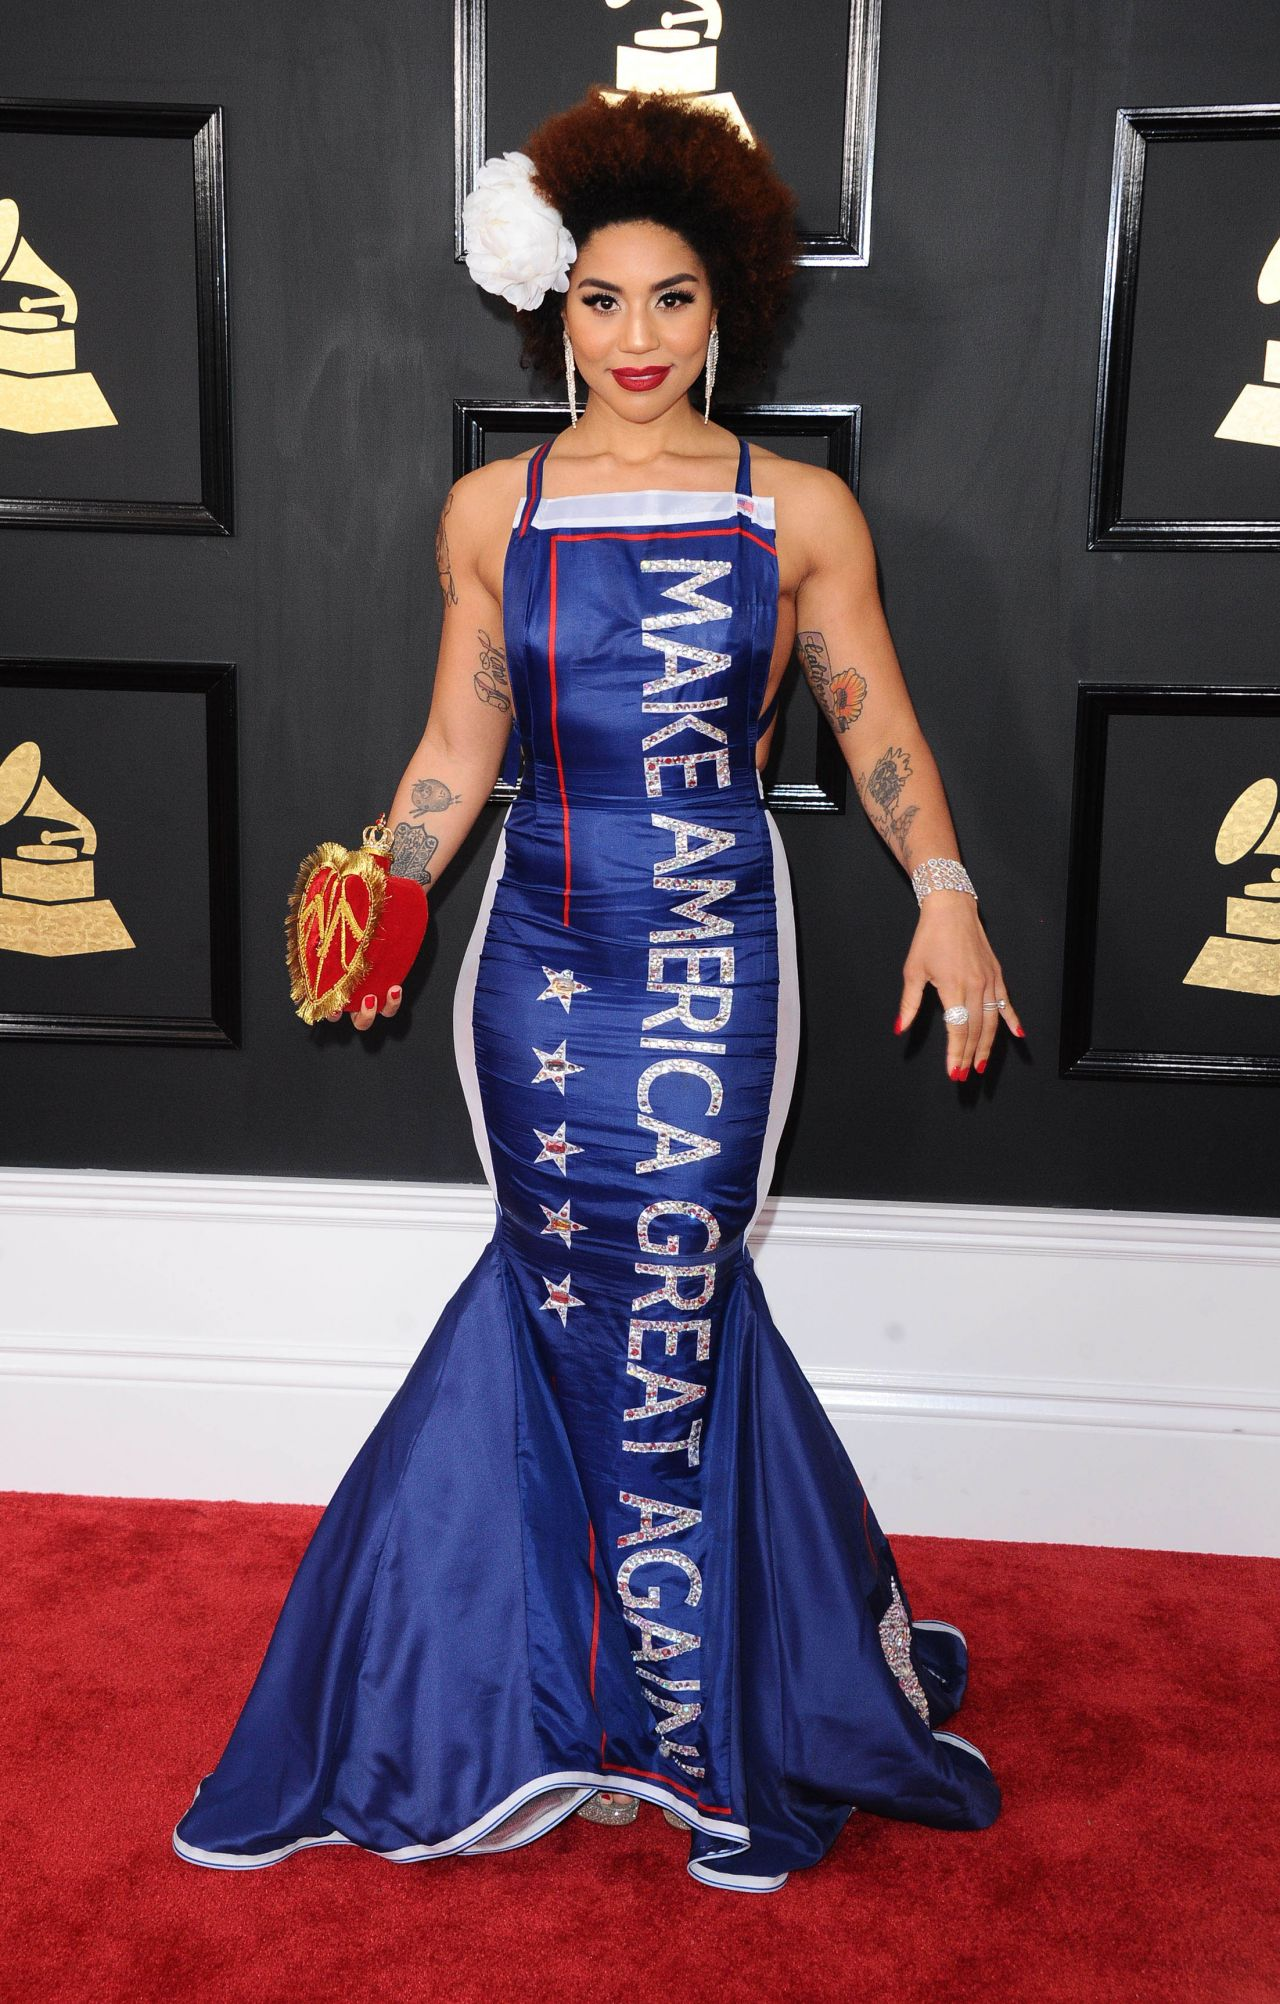 Image result for joy villa grammy awards 2017